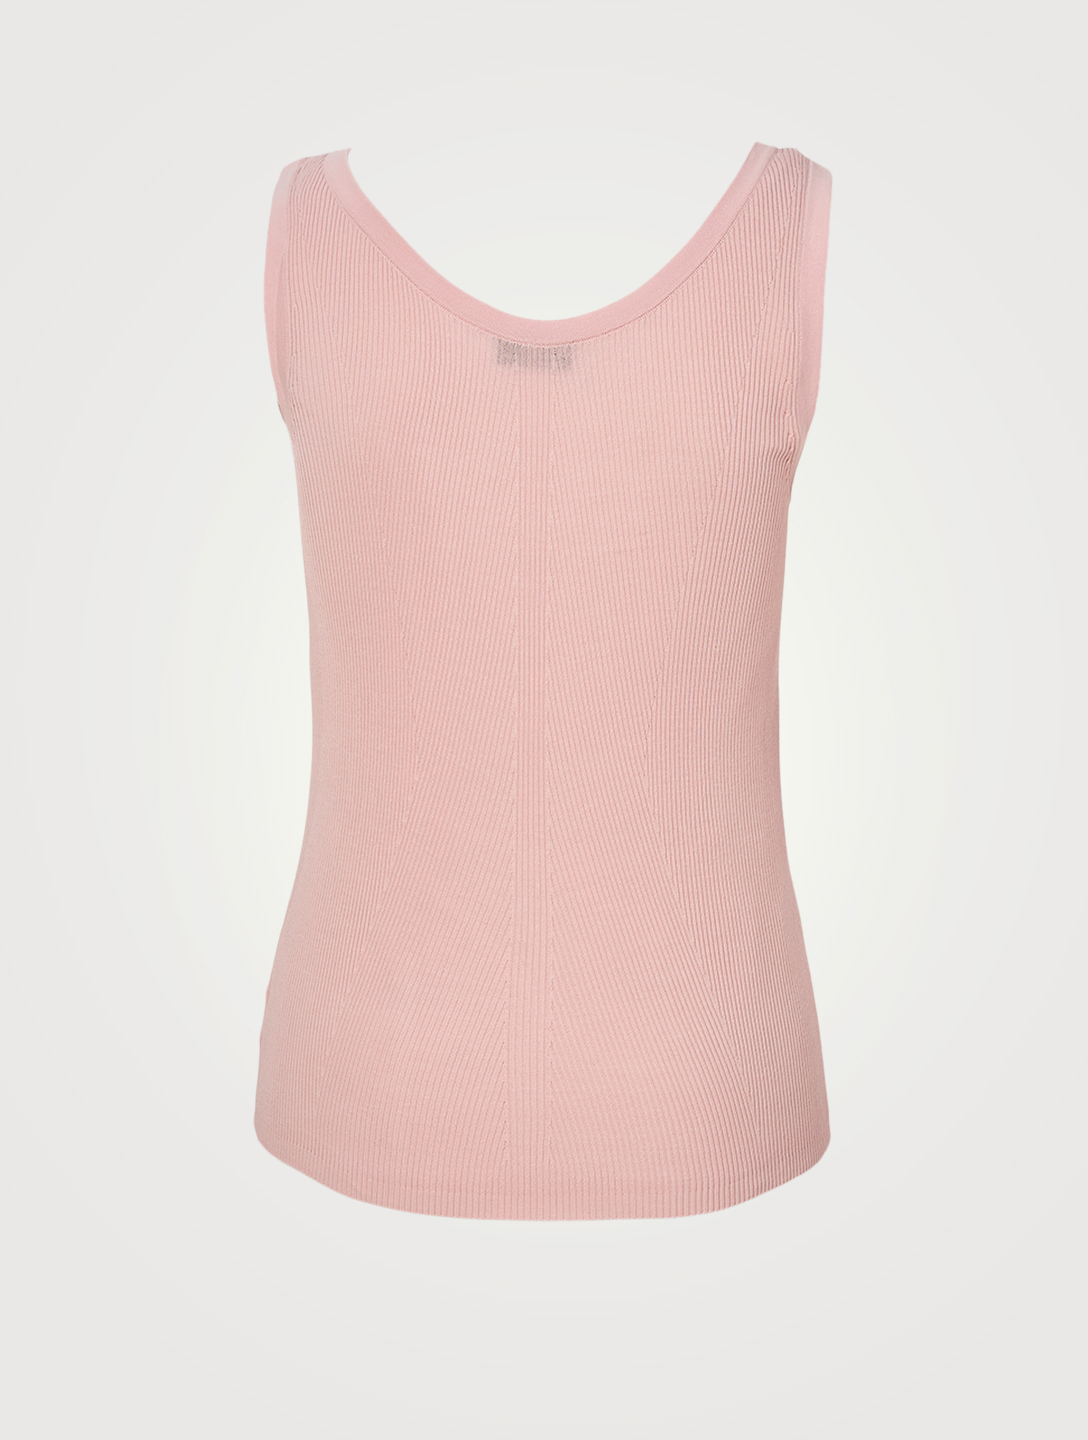 AKRIS Cotton Ribbed Tank Top Women's Pink